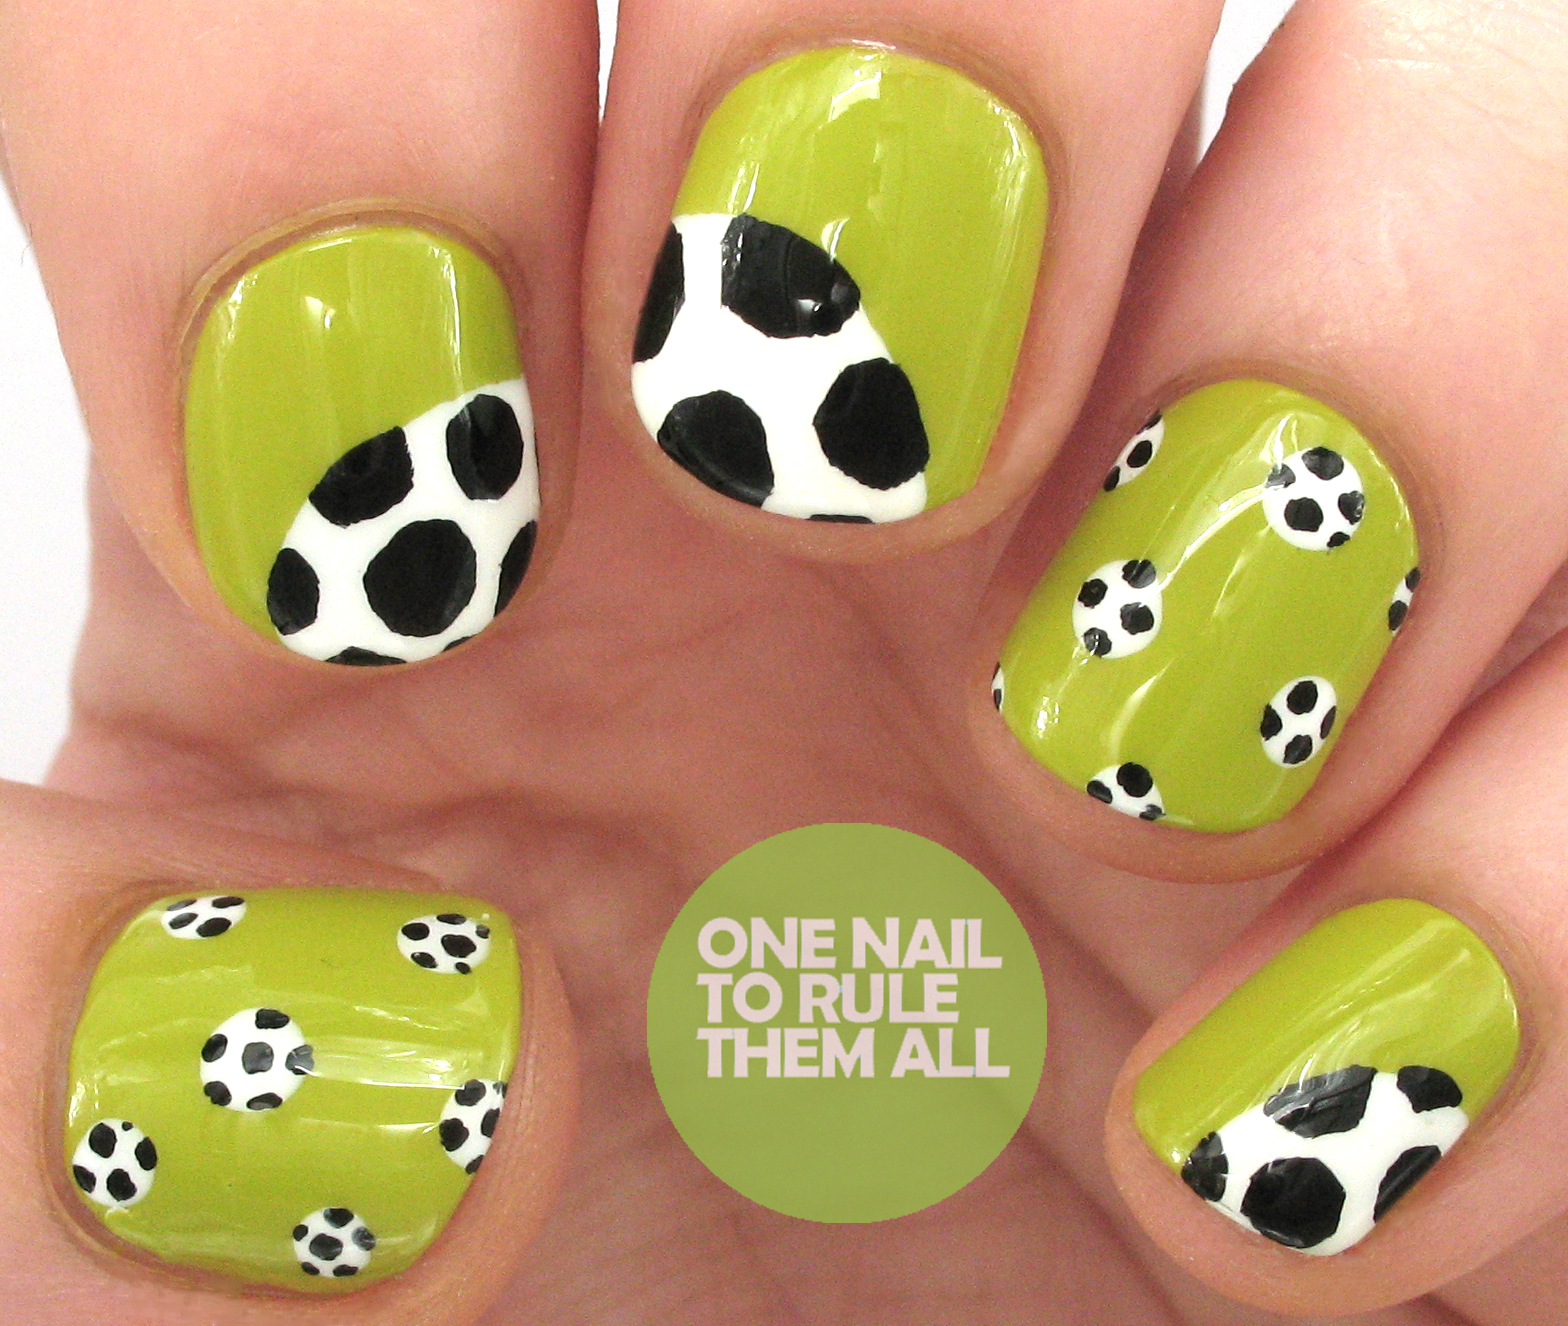 One Nail To Rule Them All Barry M Nail Art Pens Review: One Nail To Rule Them All: World Cup Final Nail Art For